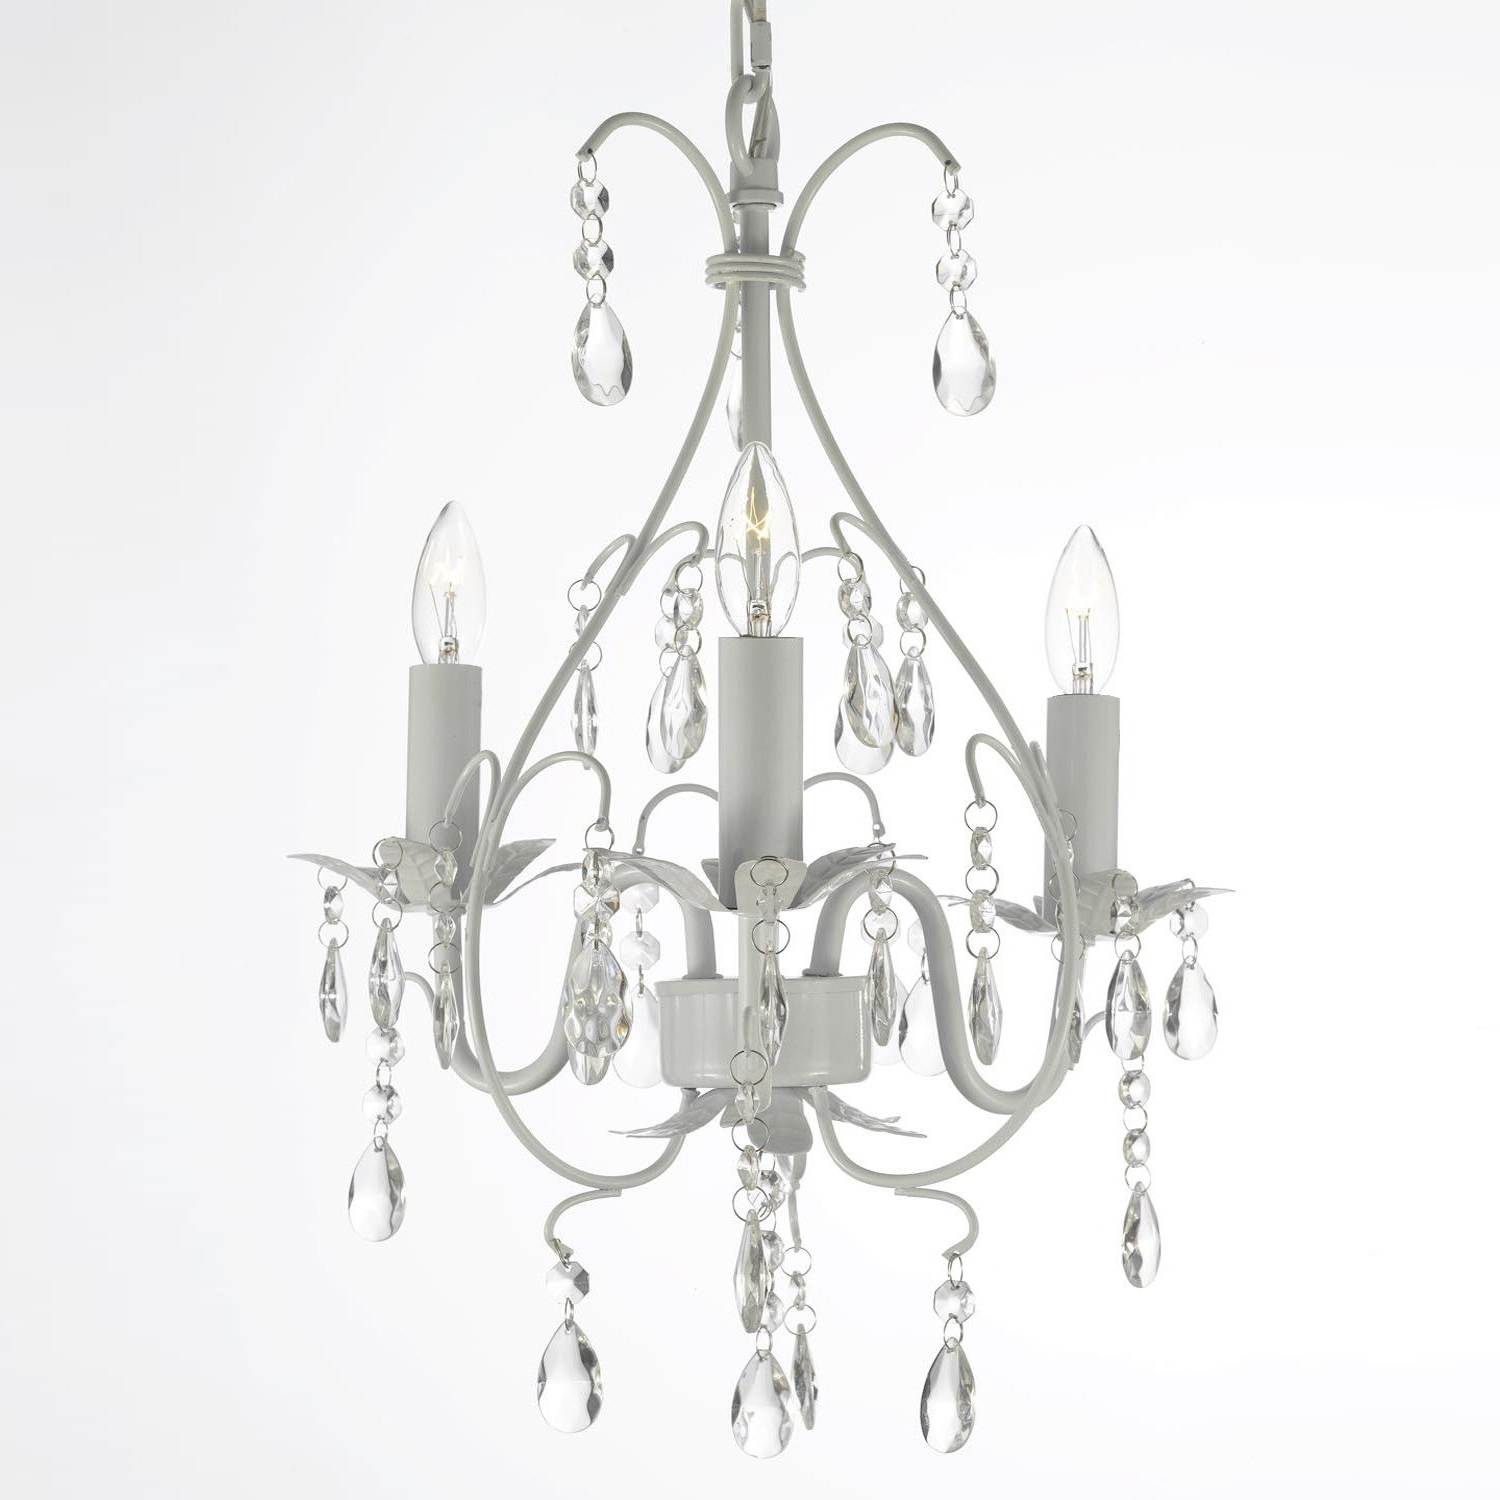 Aldora 4 Light Candle Style Chandeliers Intended For Popular Evon 3 Light Led Candle Style Chandelier (View 10 of 20)